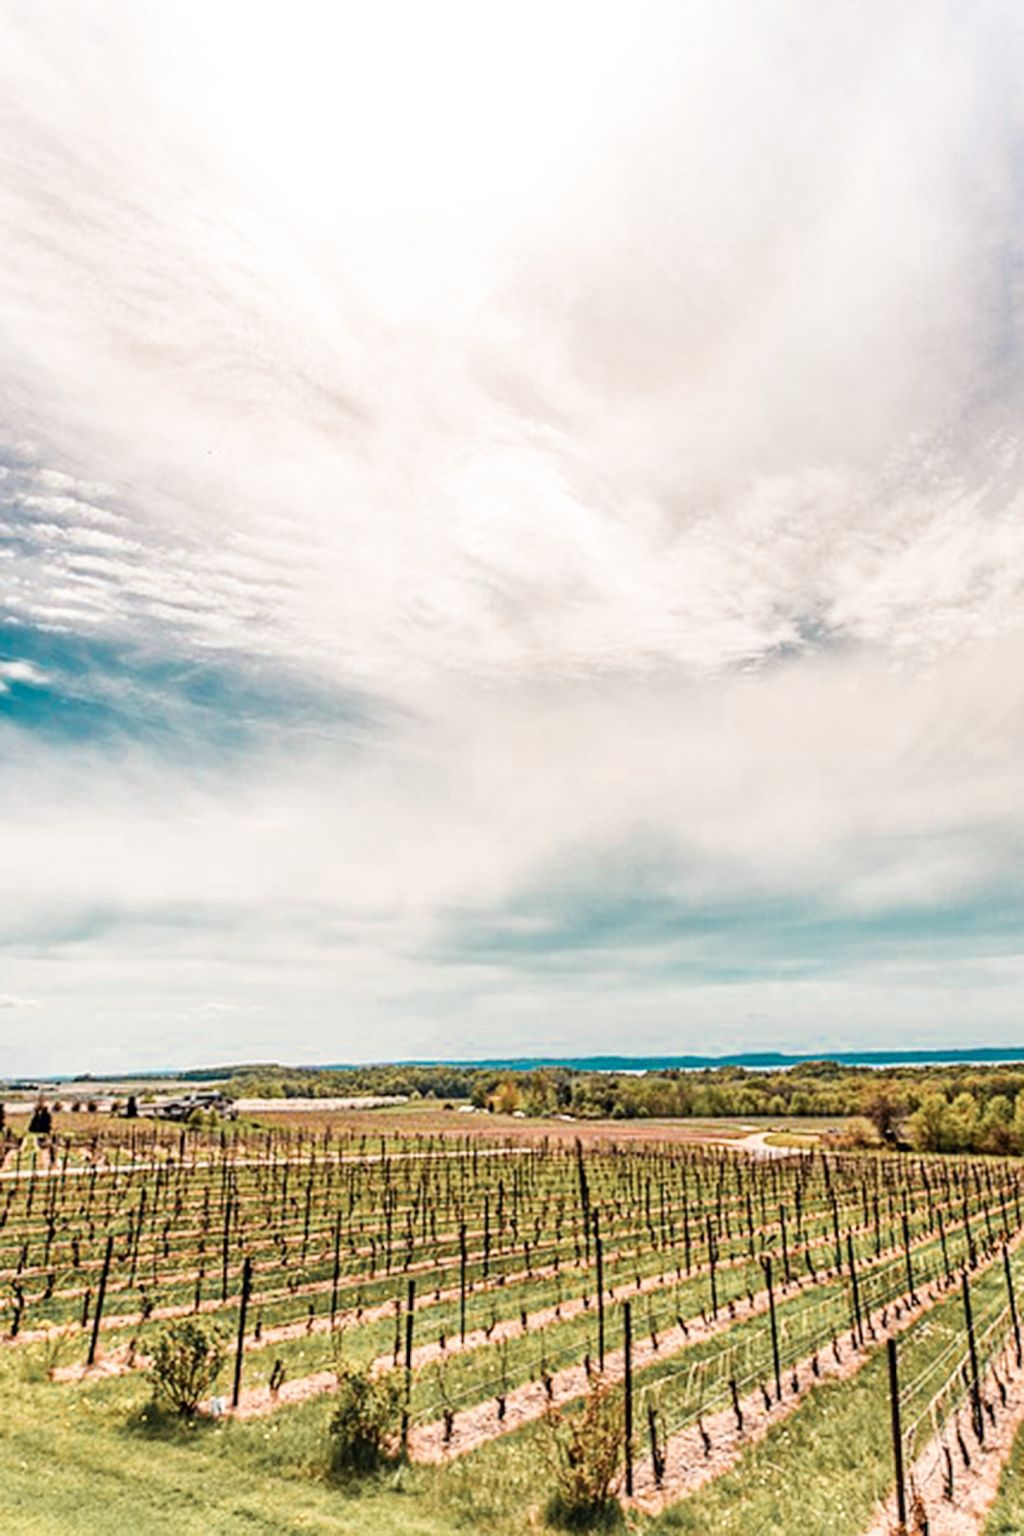 traverse city wine tour